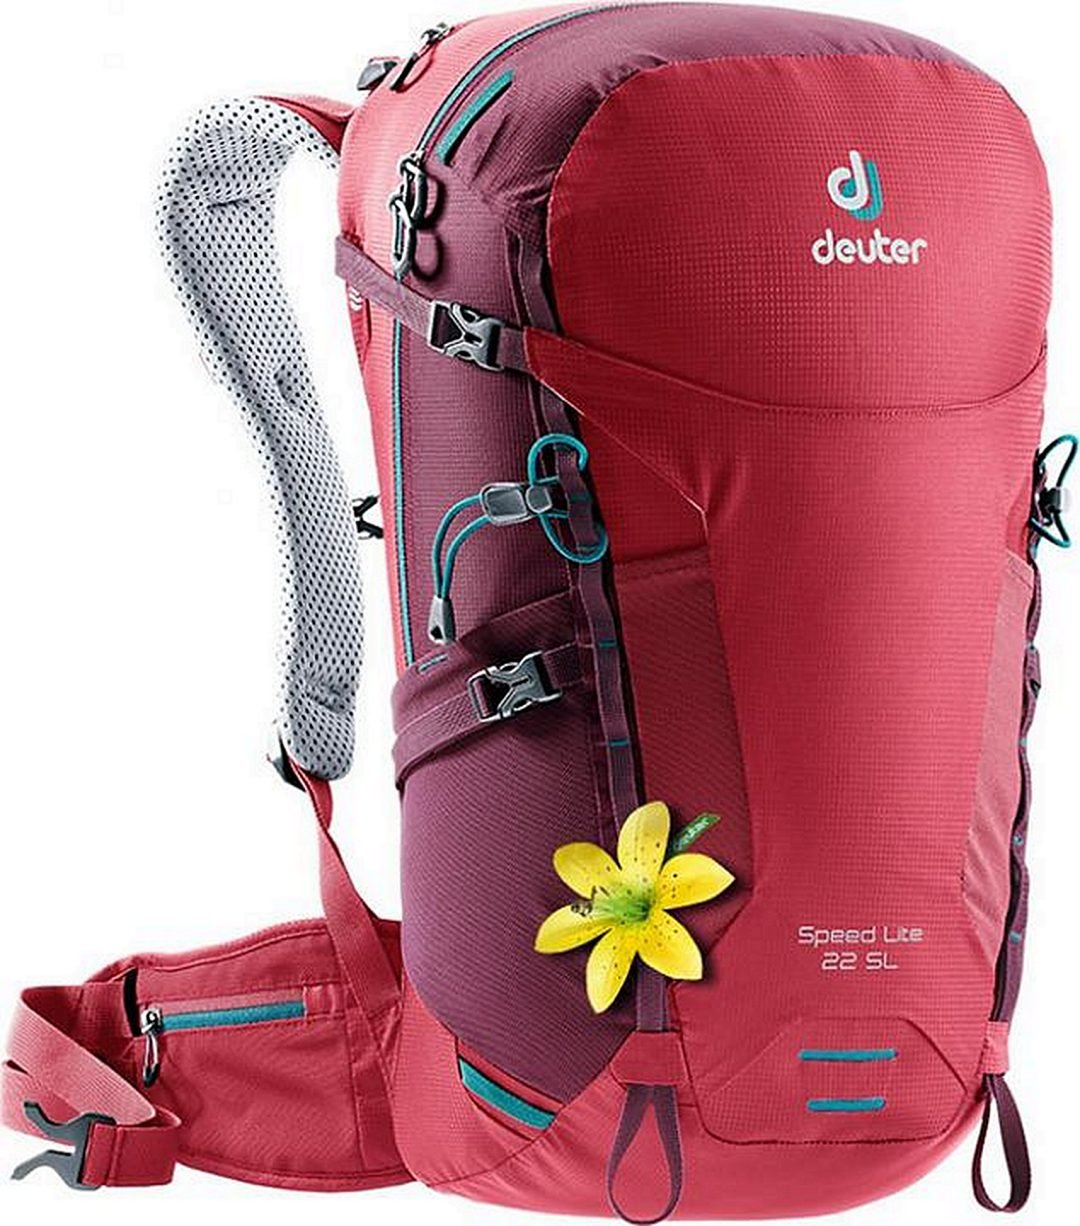 Deuter Speed Lite 22 SL Daypack